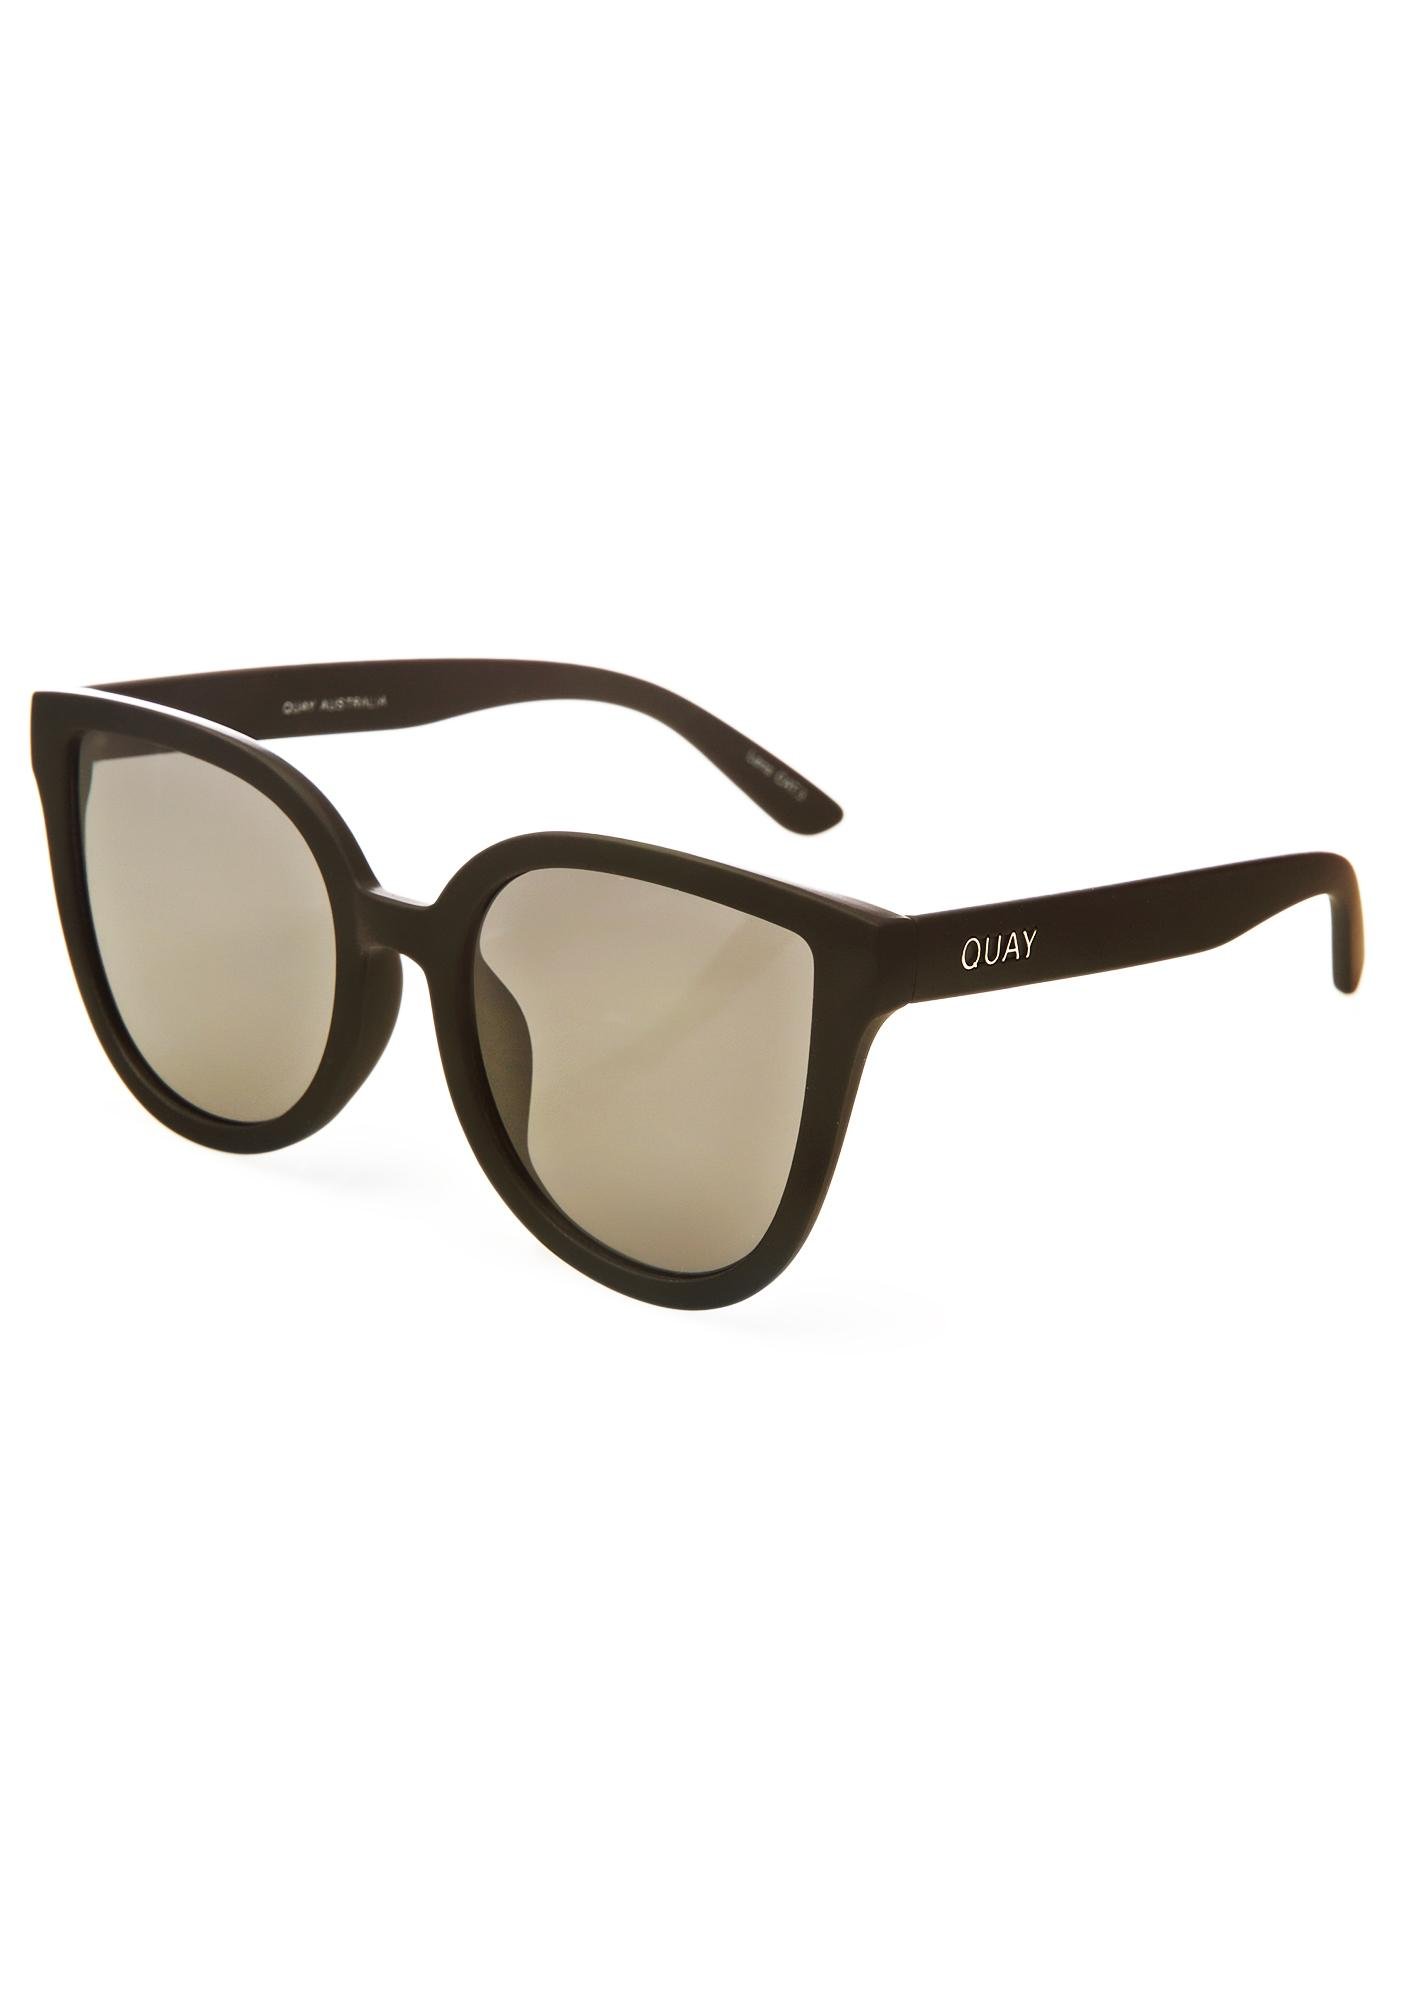 Quay Eyeware Black Paradiso Sunglasses